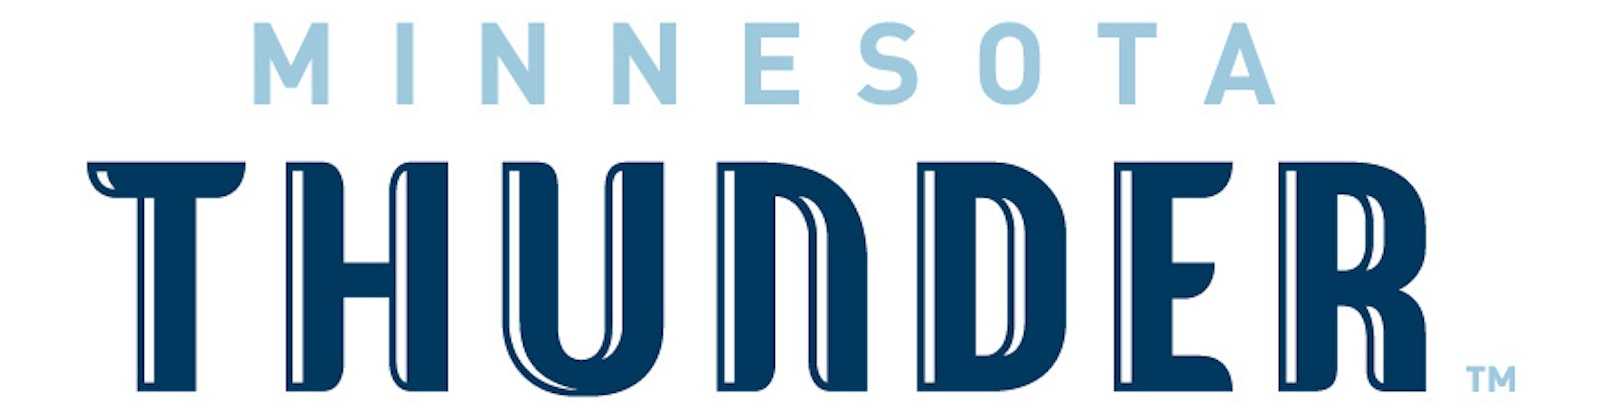 Thunder logo wordmark